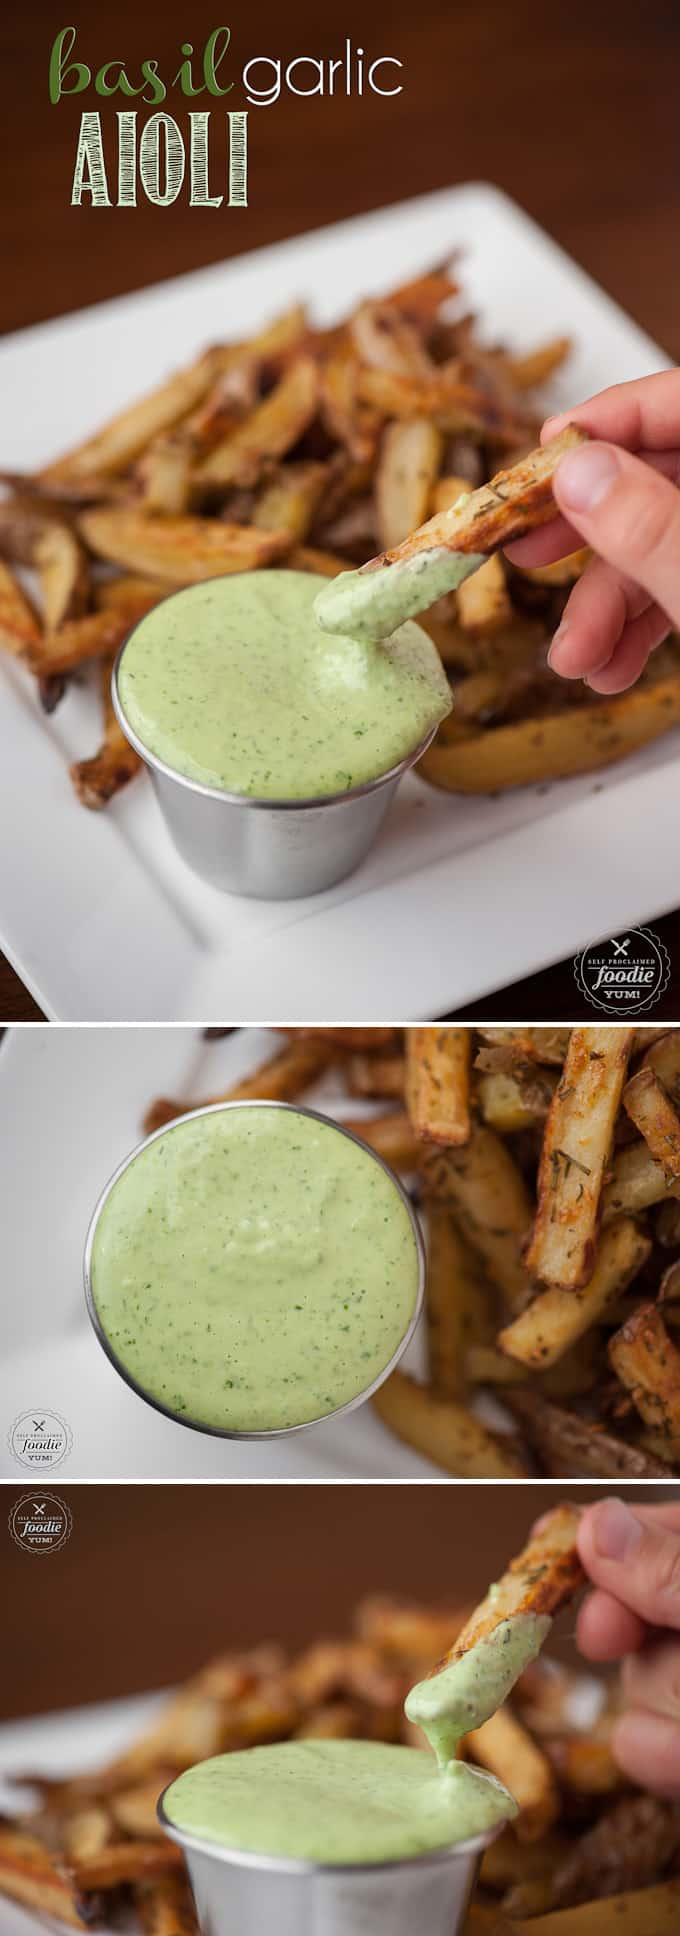 Basil Garlic Aioli sauce made from scratch only takes a few easy minutes and the result is a flavorful dip or spread that packs a real raw garlic punch.